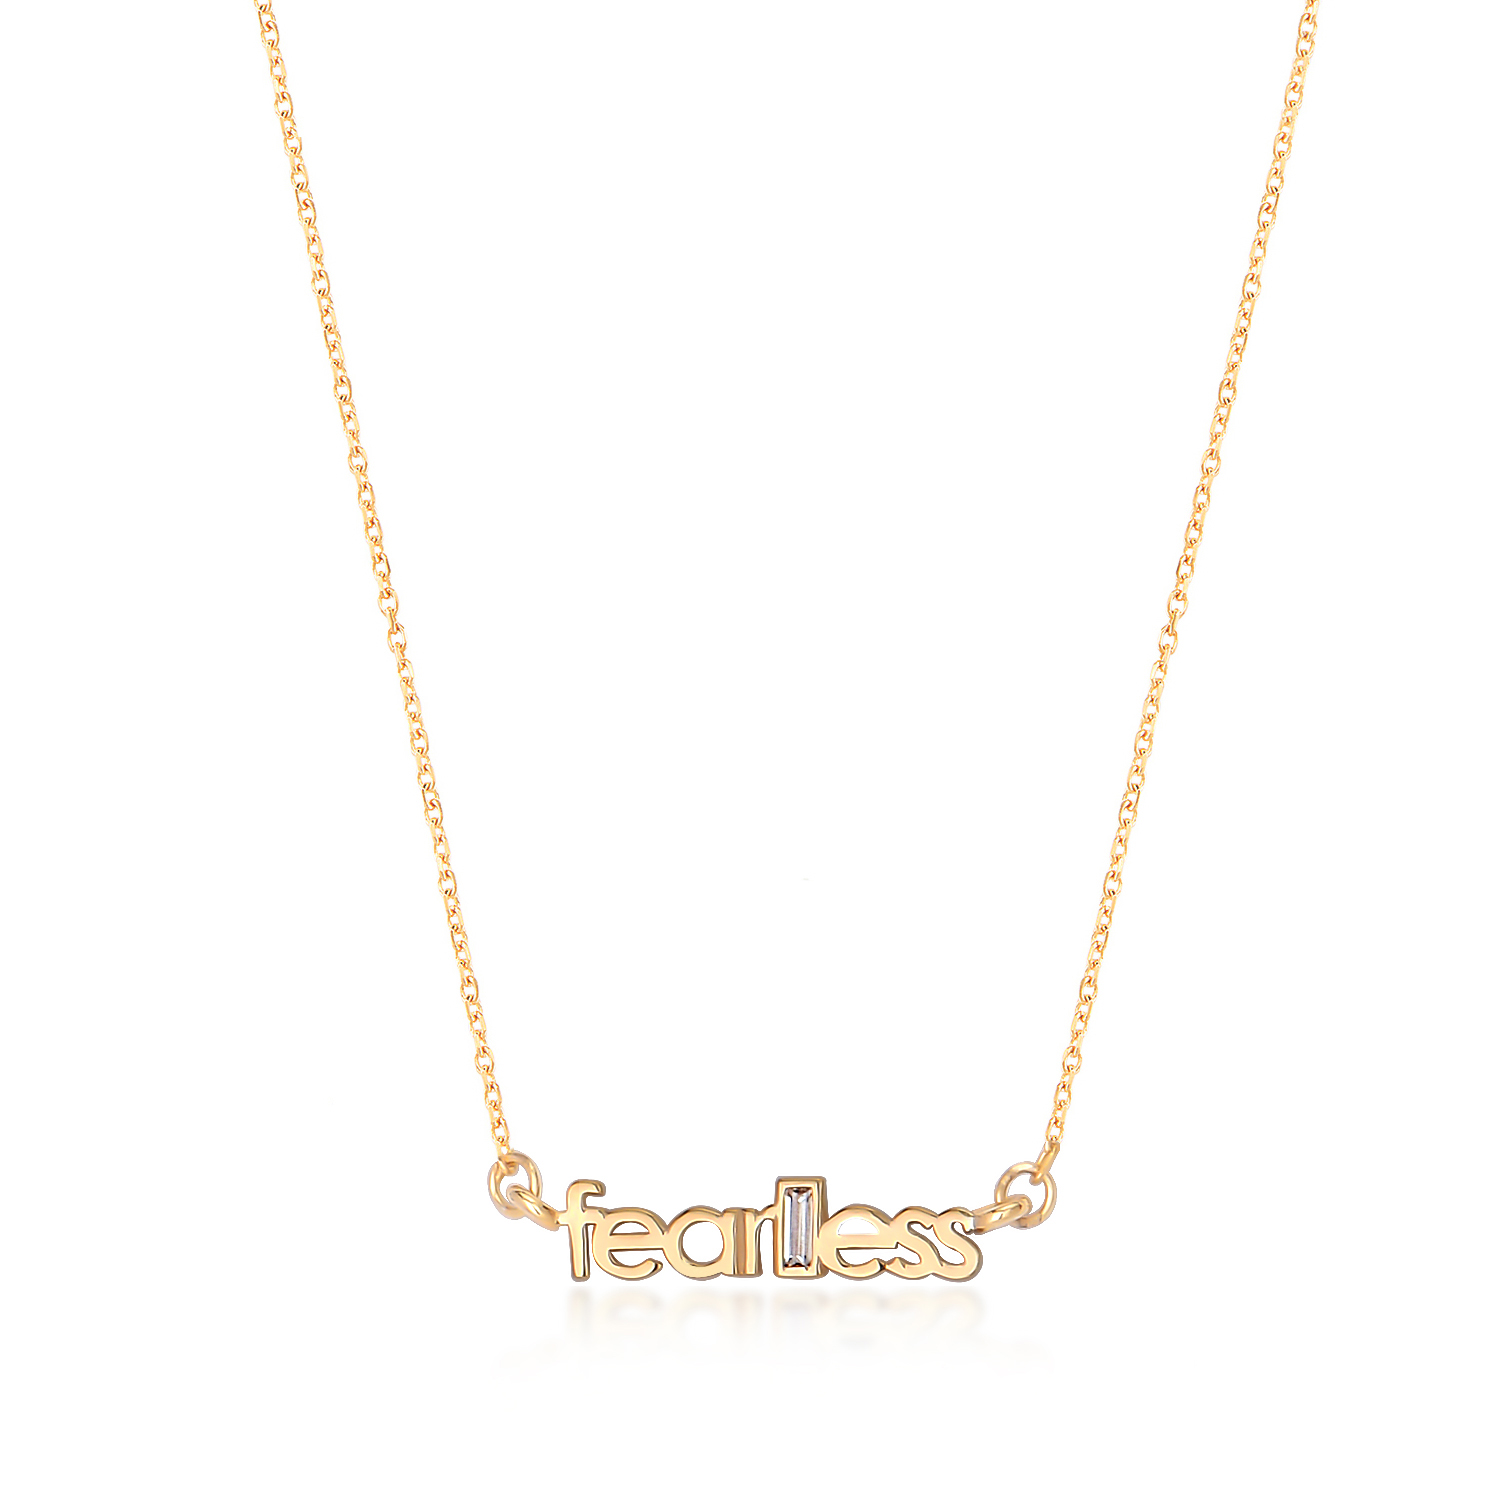 skf-international-sterling-silver-925-necklace-with-fearless